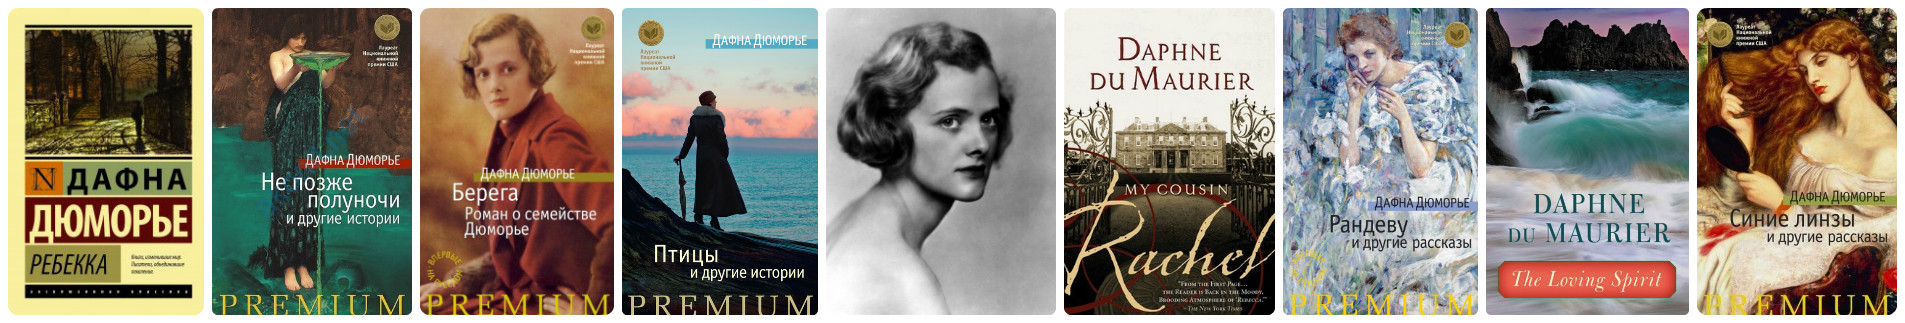 an introduction to the literature by daphne du maurier The menacing daphne du maurier the prolific 'grand dame of popular literature' despised her reputation as a romance writer, not least because the truth of her life was darker than any of her plots.